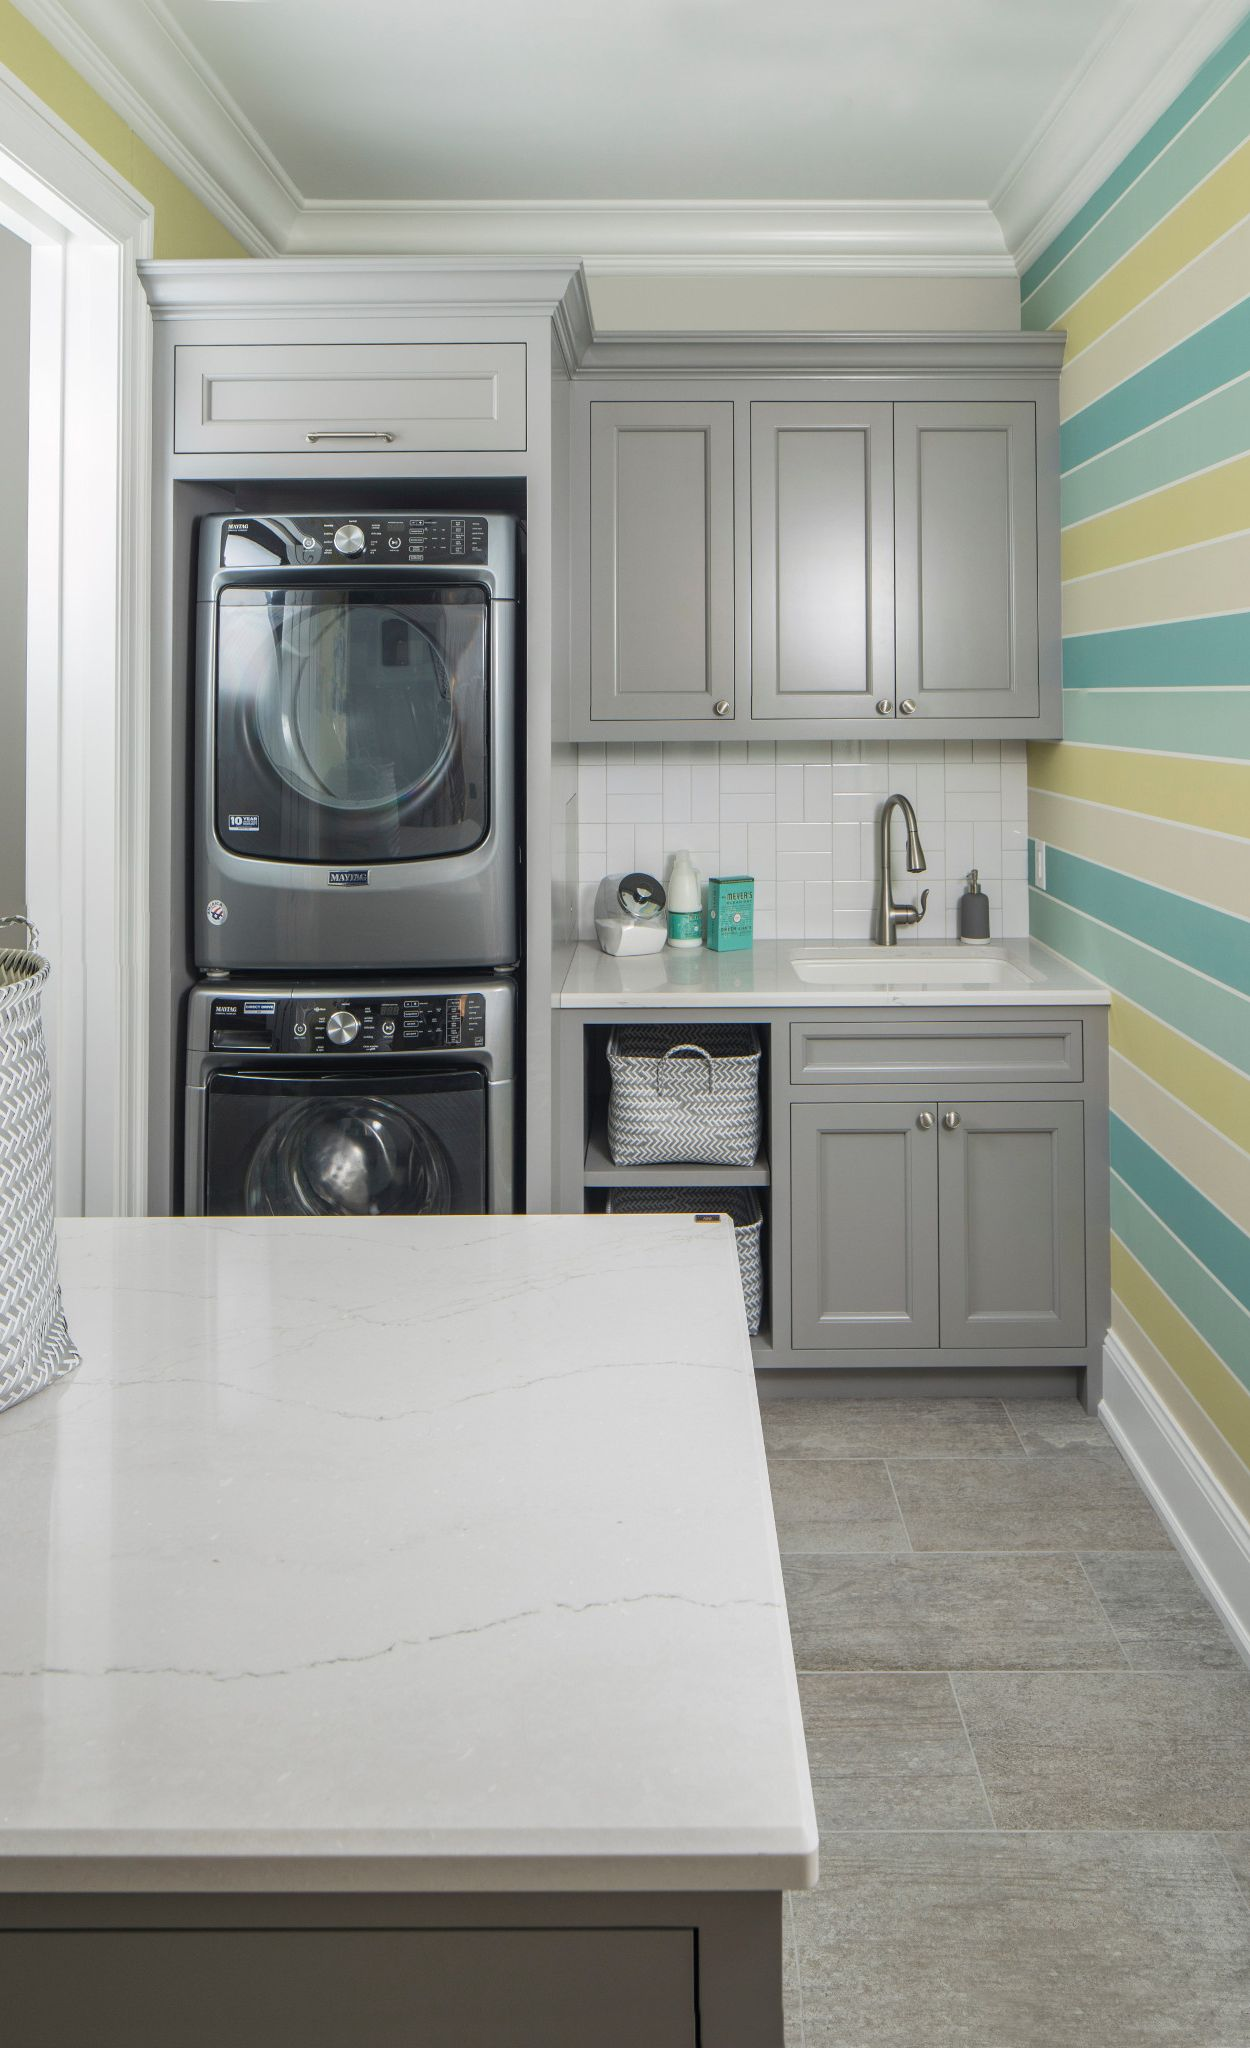 Cambria Ella in a laundry room with blue and green striped walls and gray countertops.